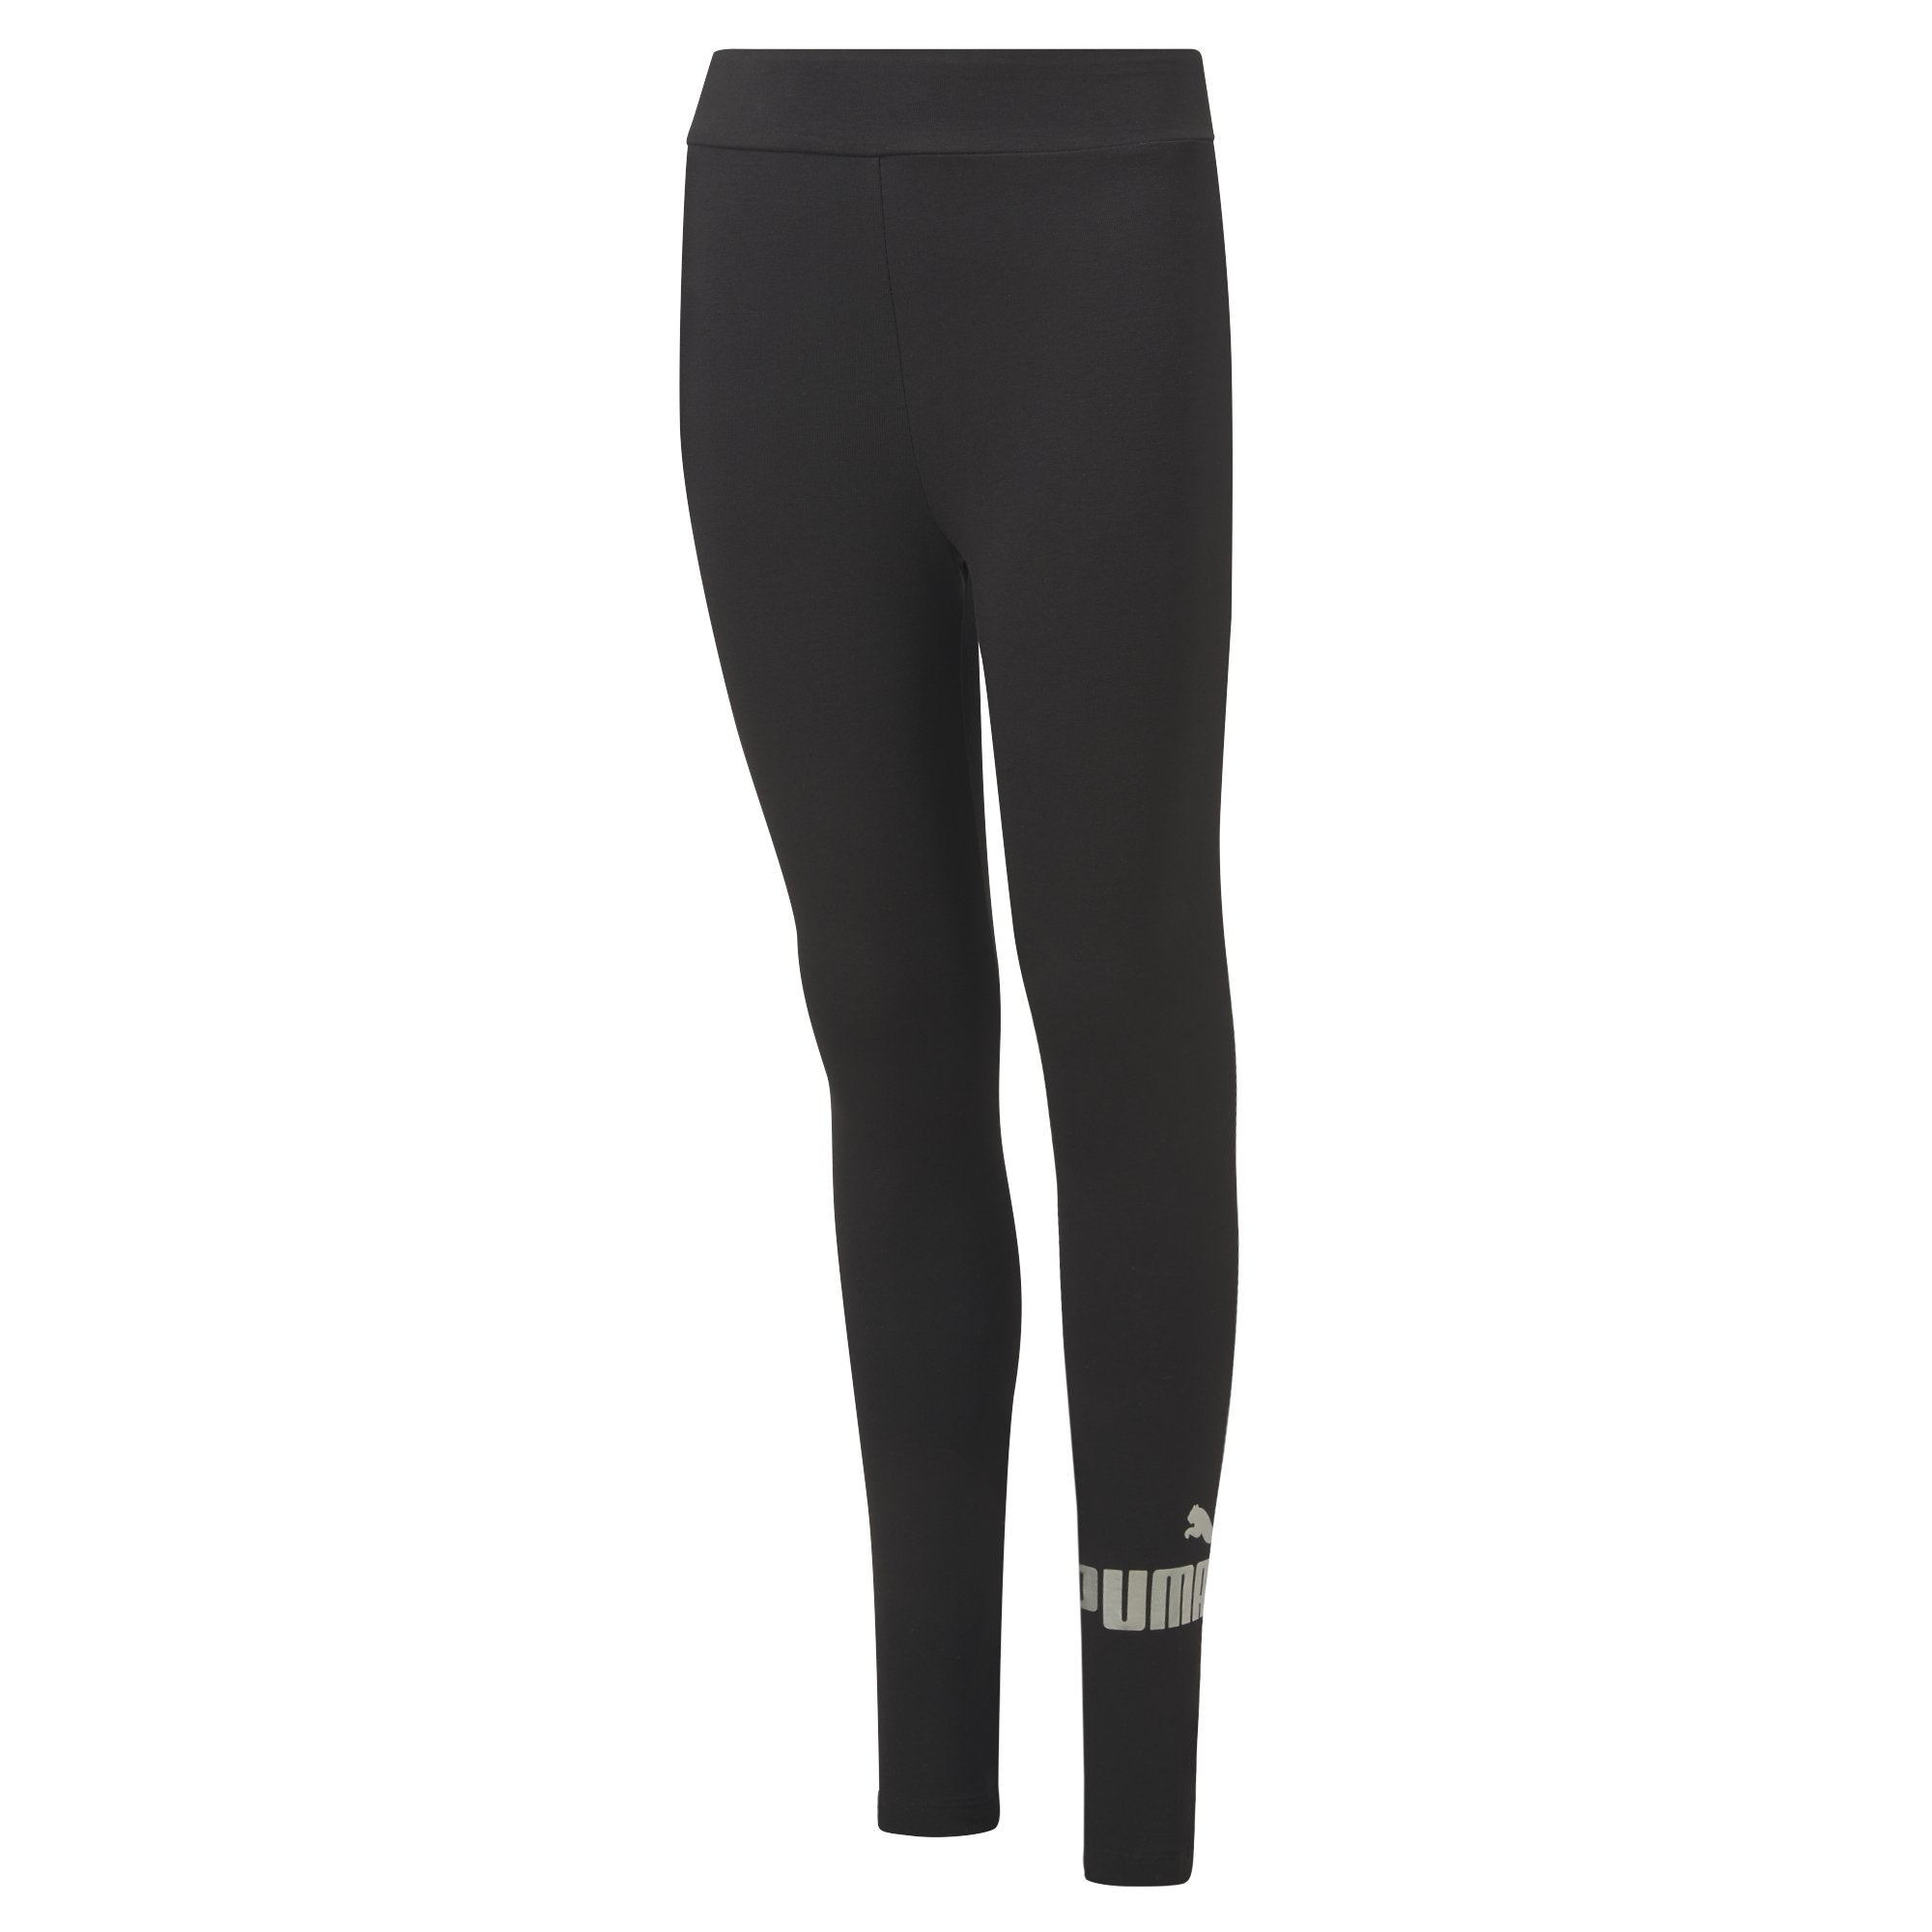 Puma Essentials+ Logo Leggings Girls - Puma Black SP-ApparelTights-Kids Puma